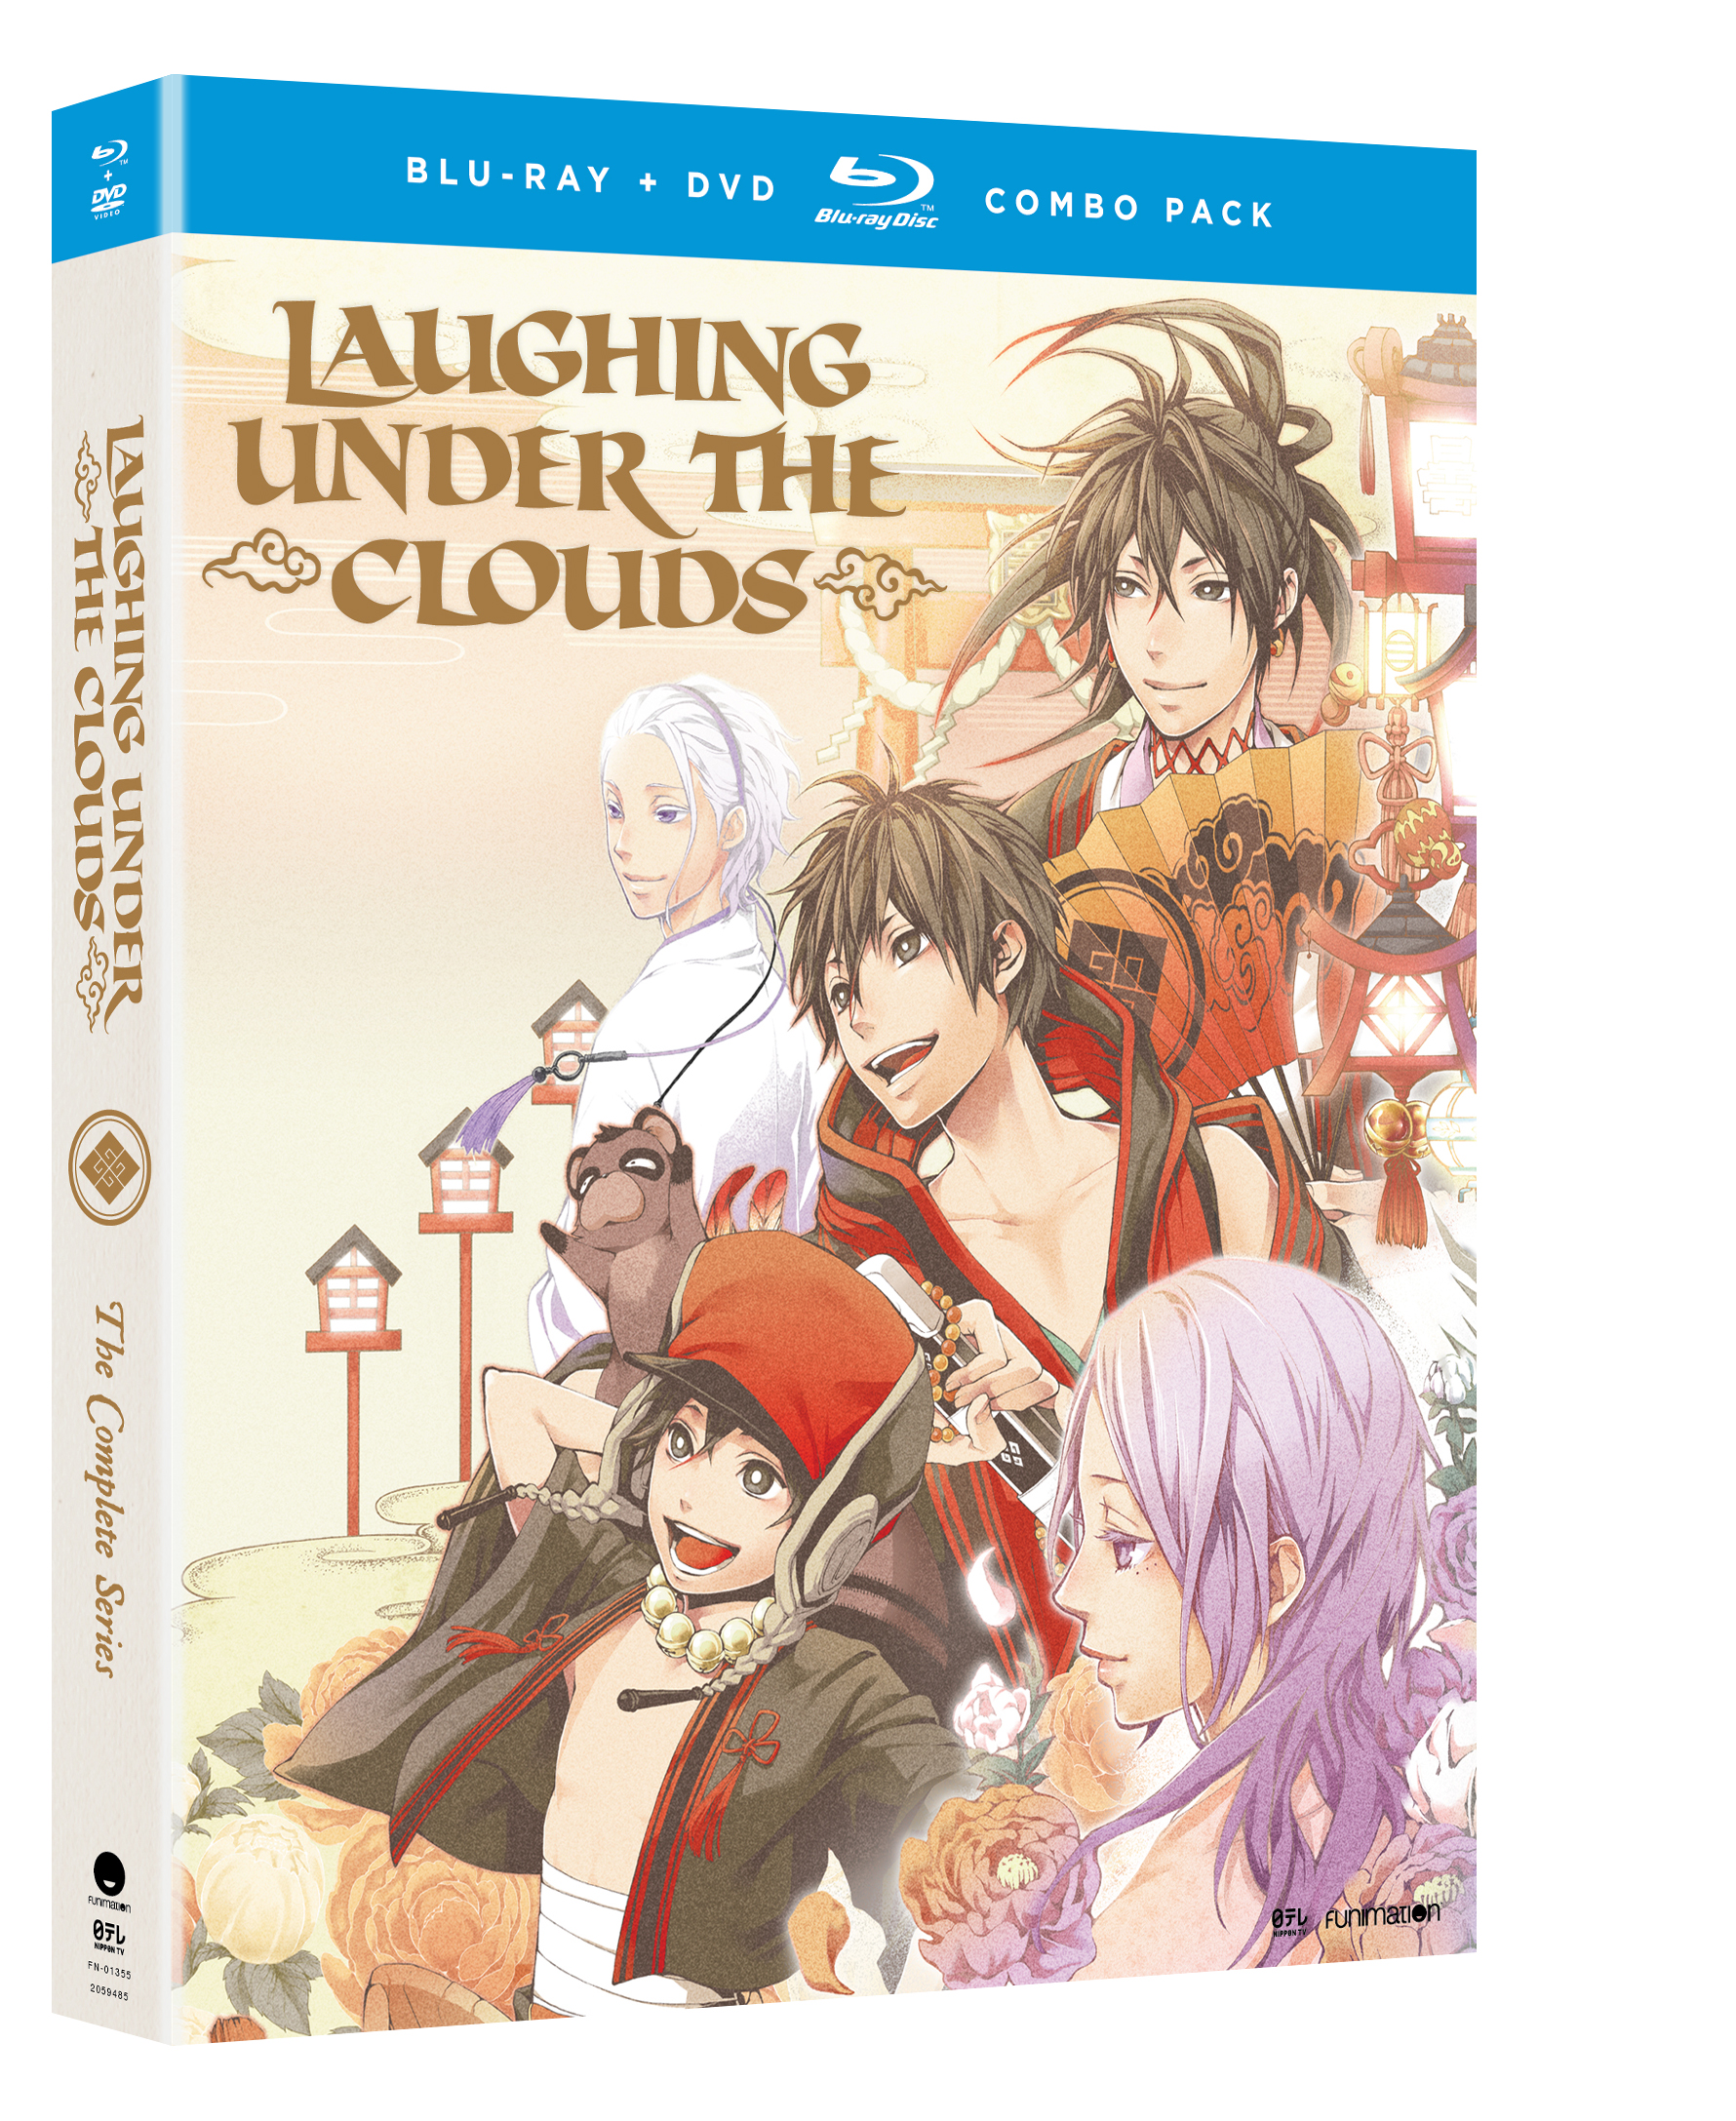 Laughing Under the Clouds Blu-ray/DVD 704400013553